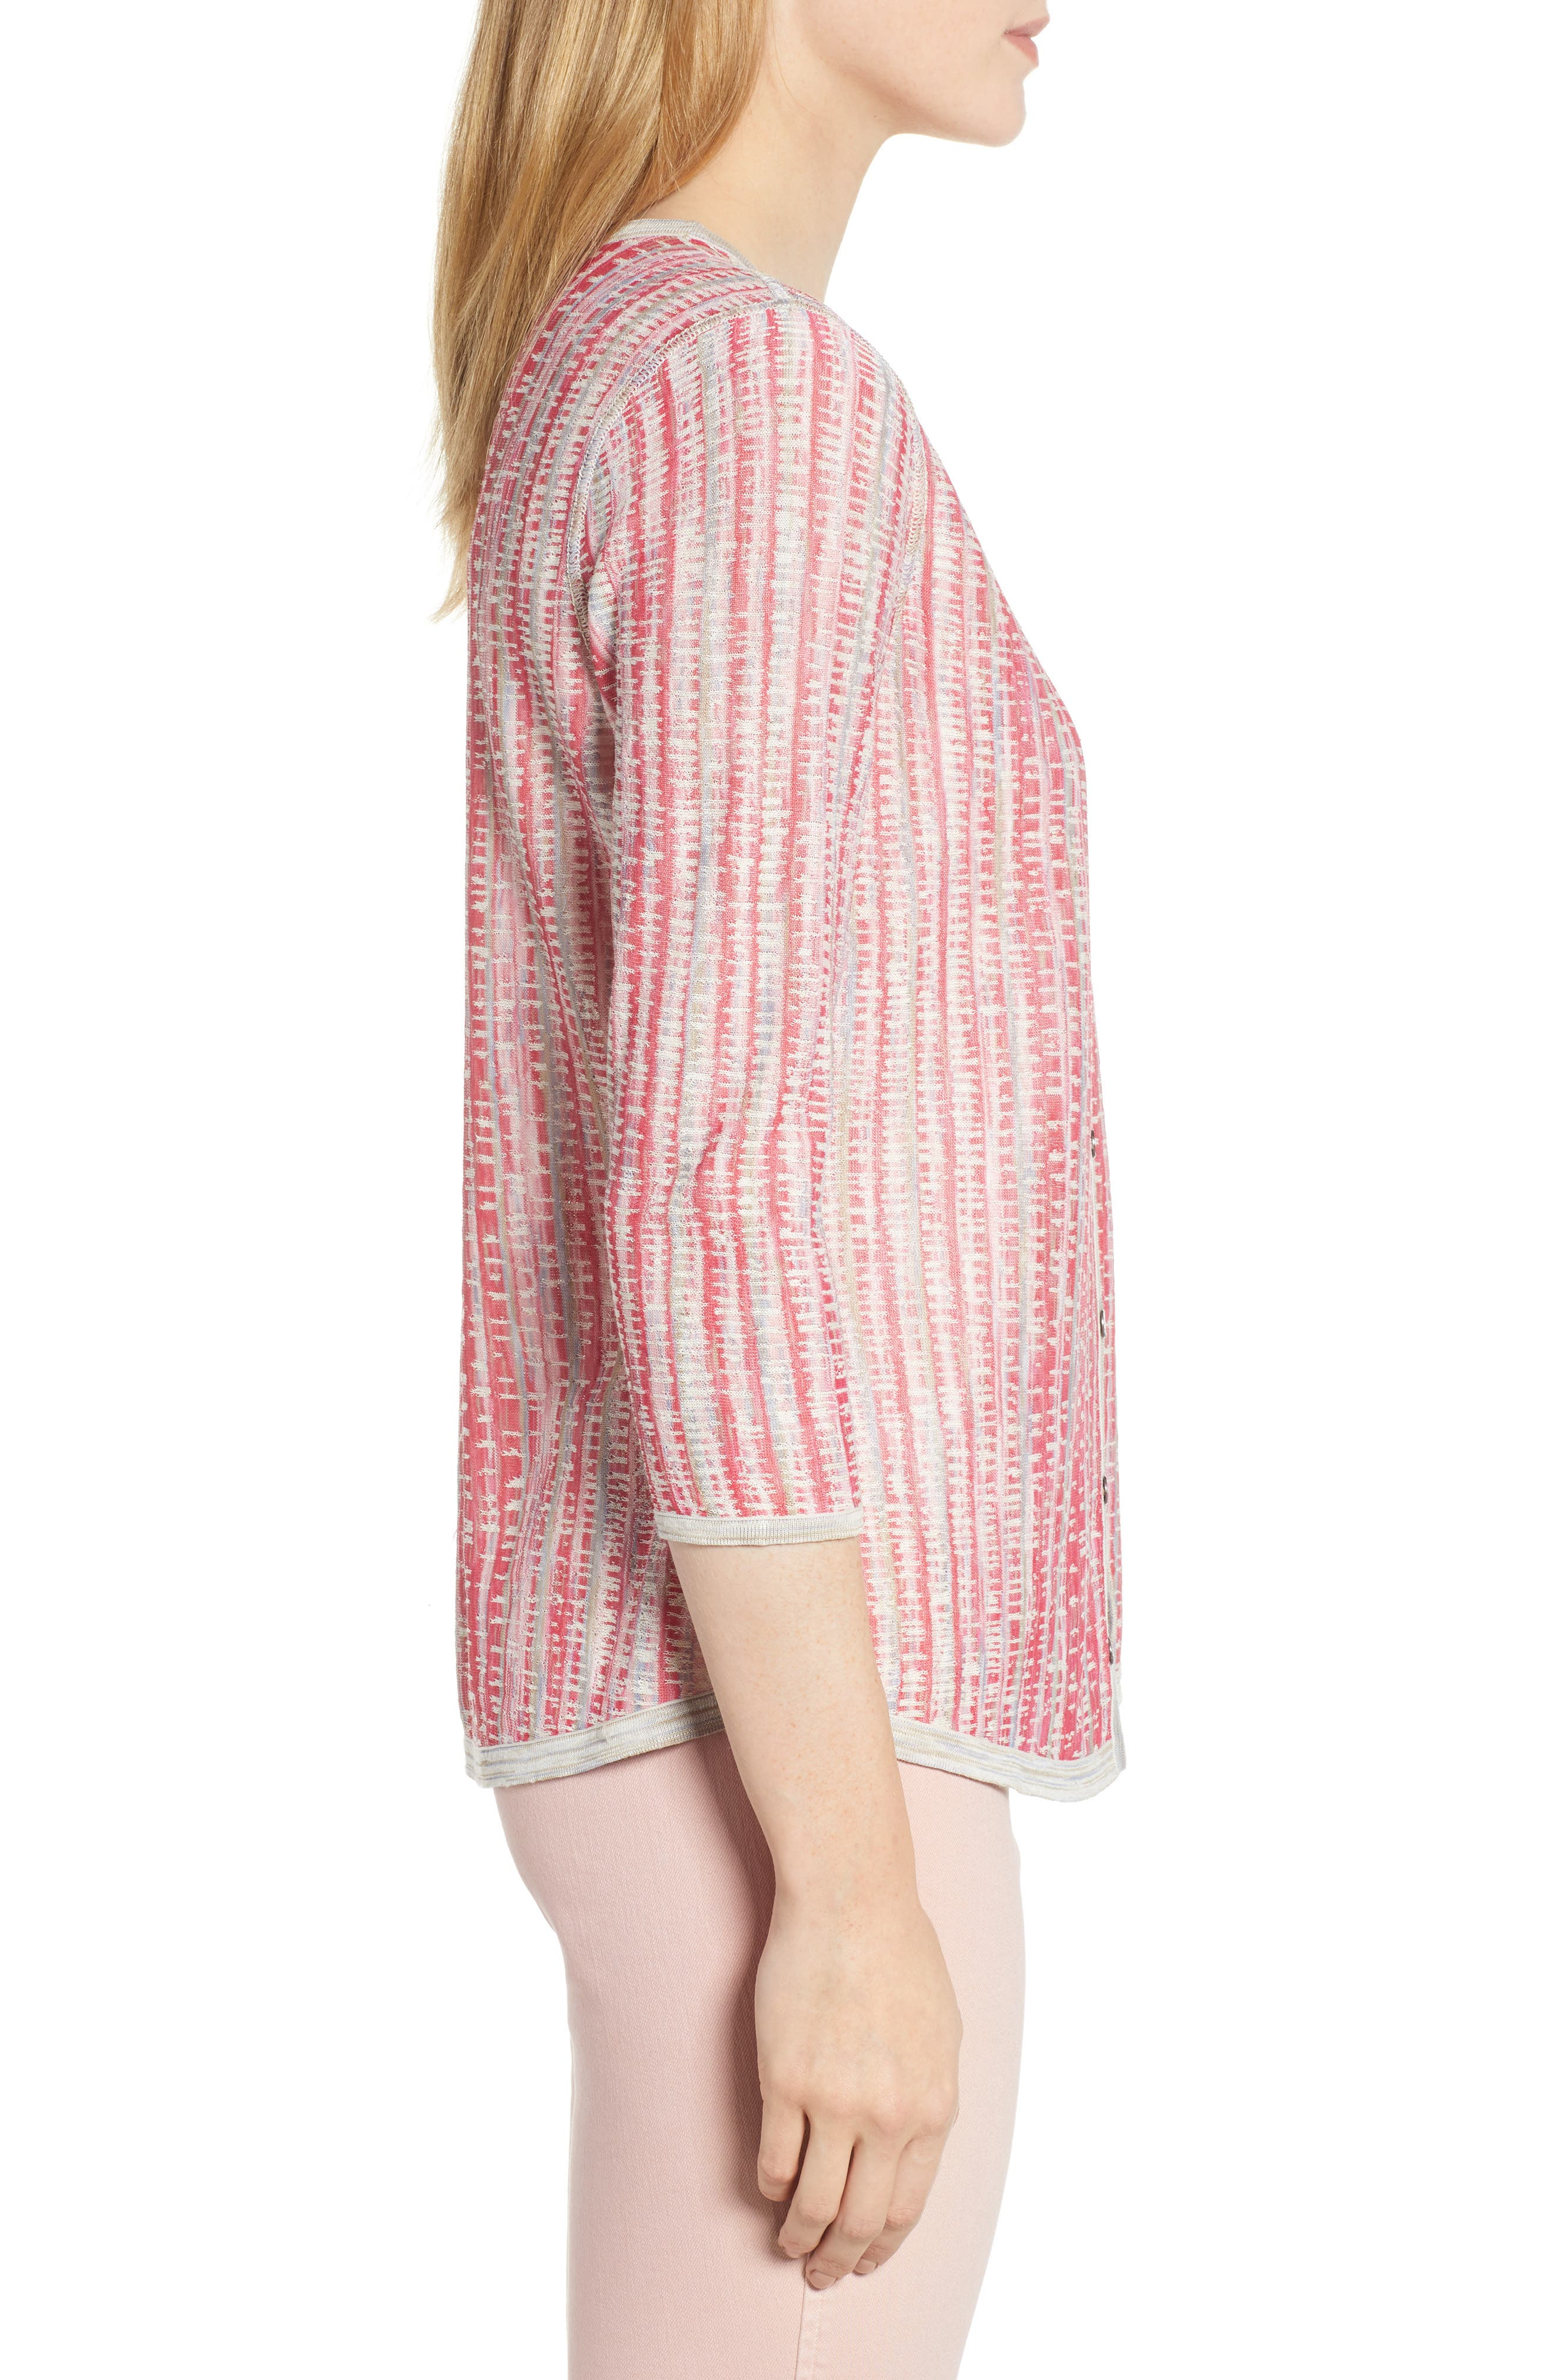 NIC+ZOE, Tubular Sunset Cardigan, Alternate thumbnail 4, color, MULTI